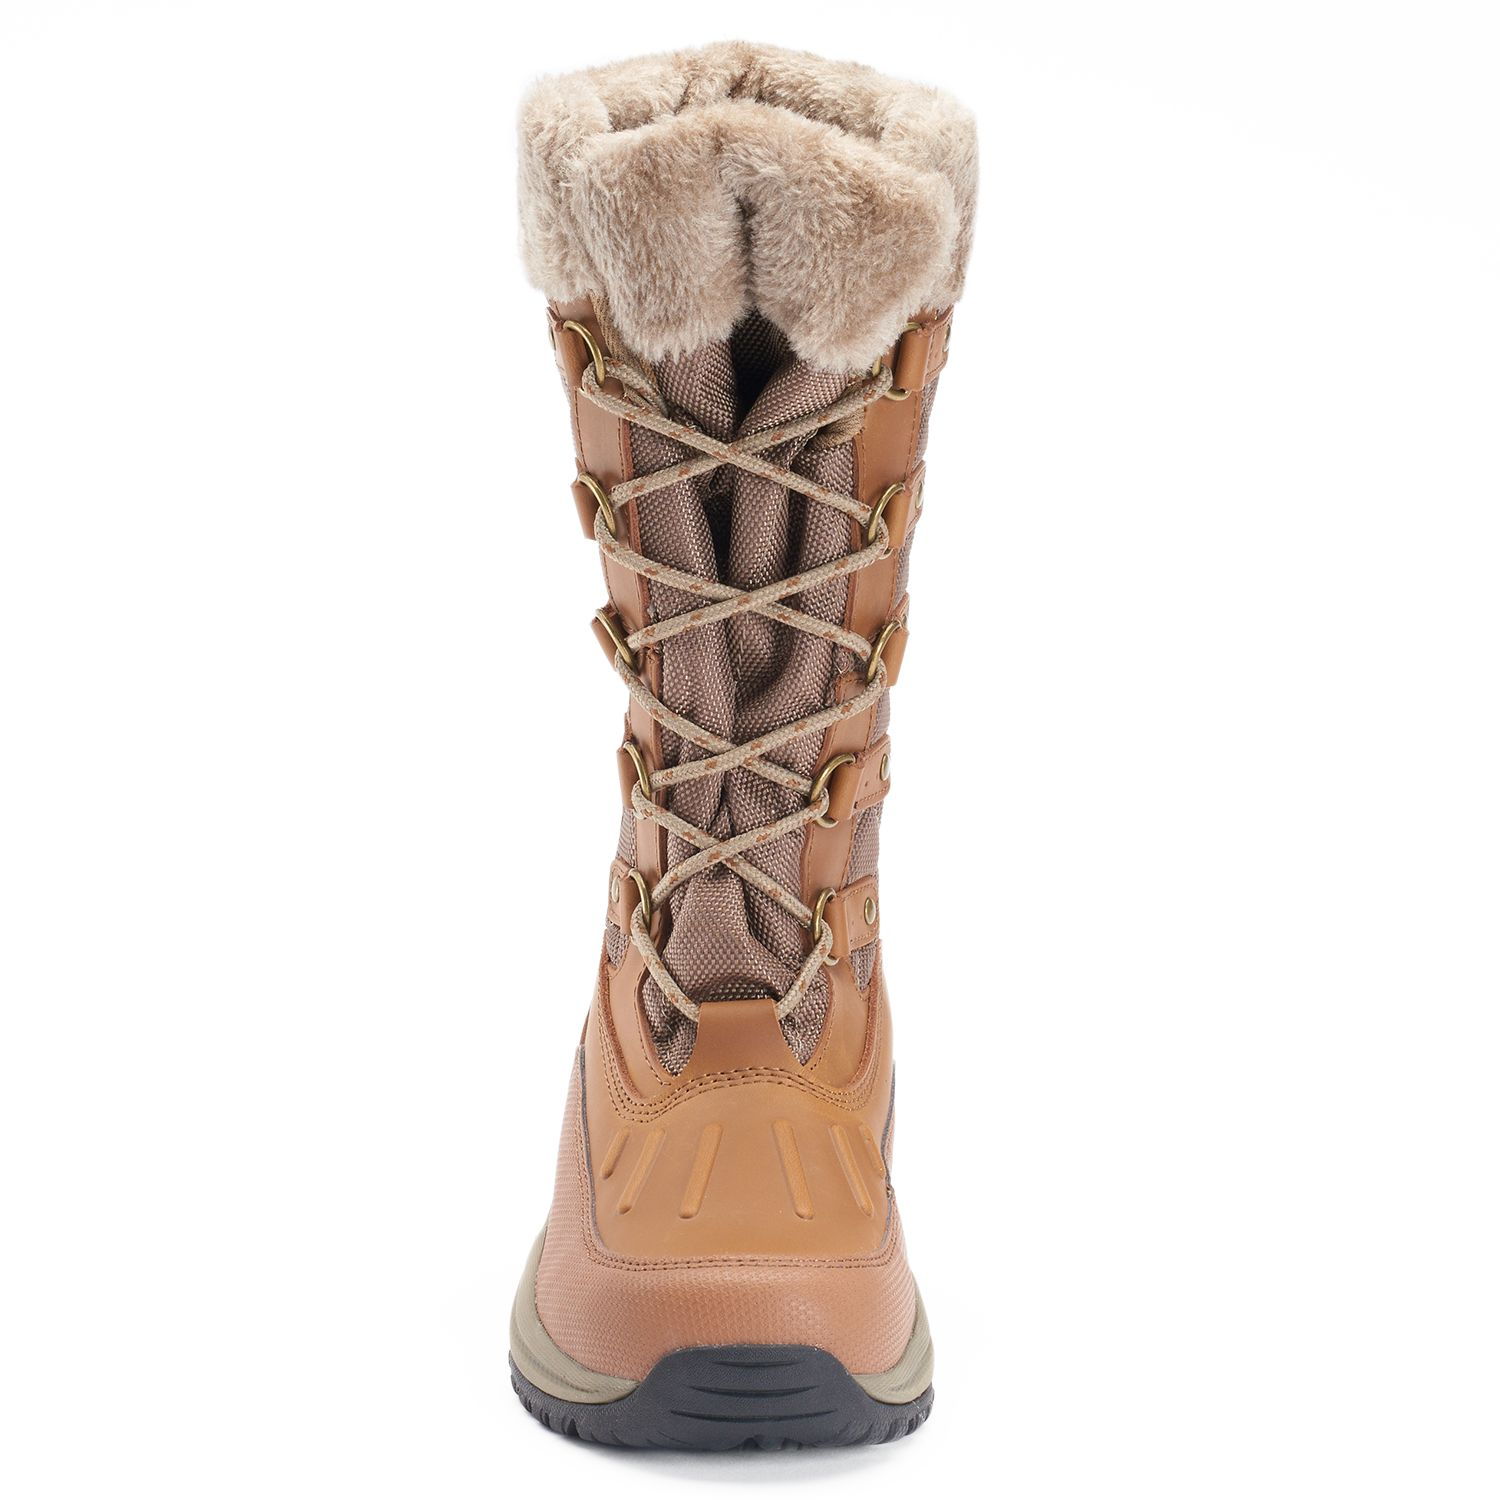 a69ee3b98d4 Womens Pacific Mountain Boots - Shoes